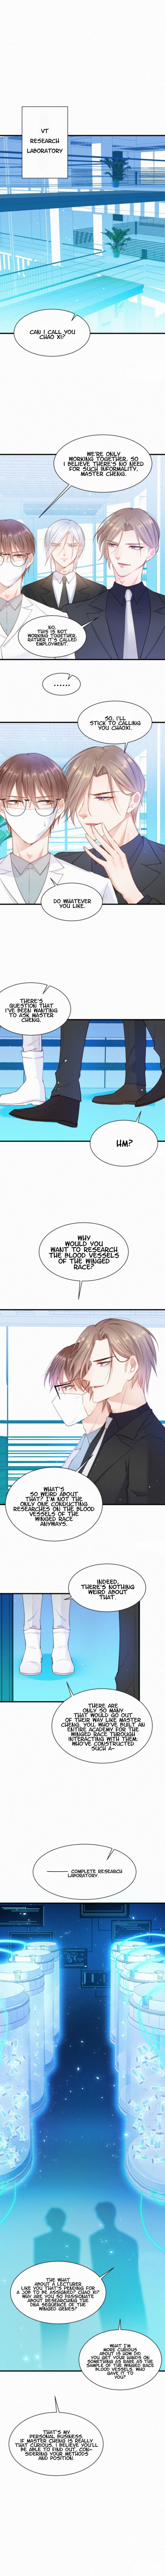 In Or Out - chapter 9 - #2